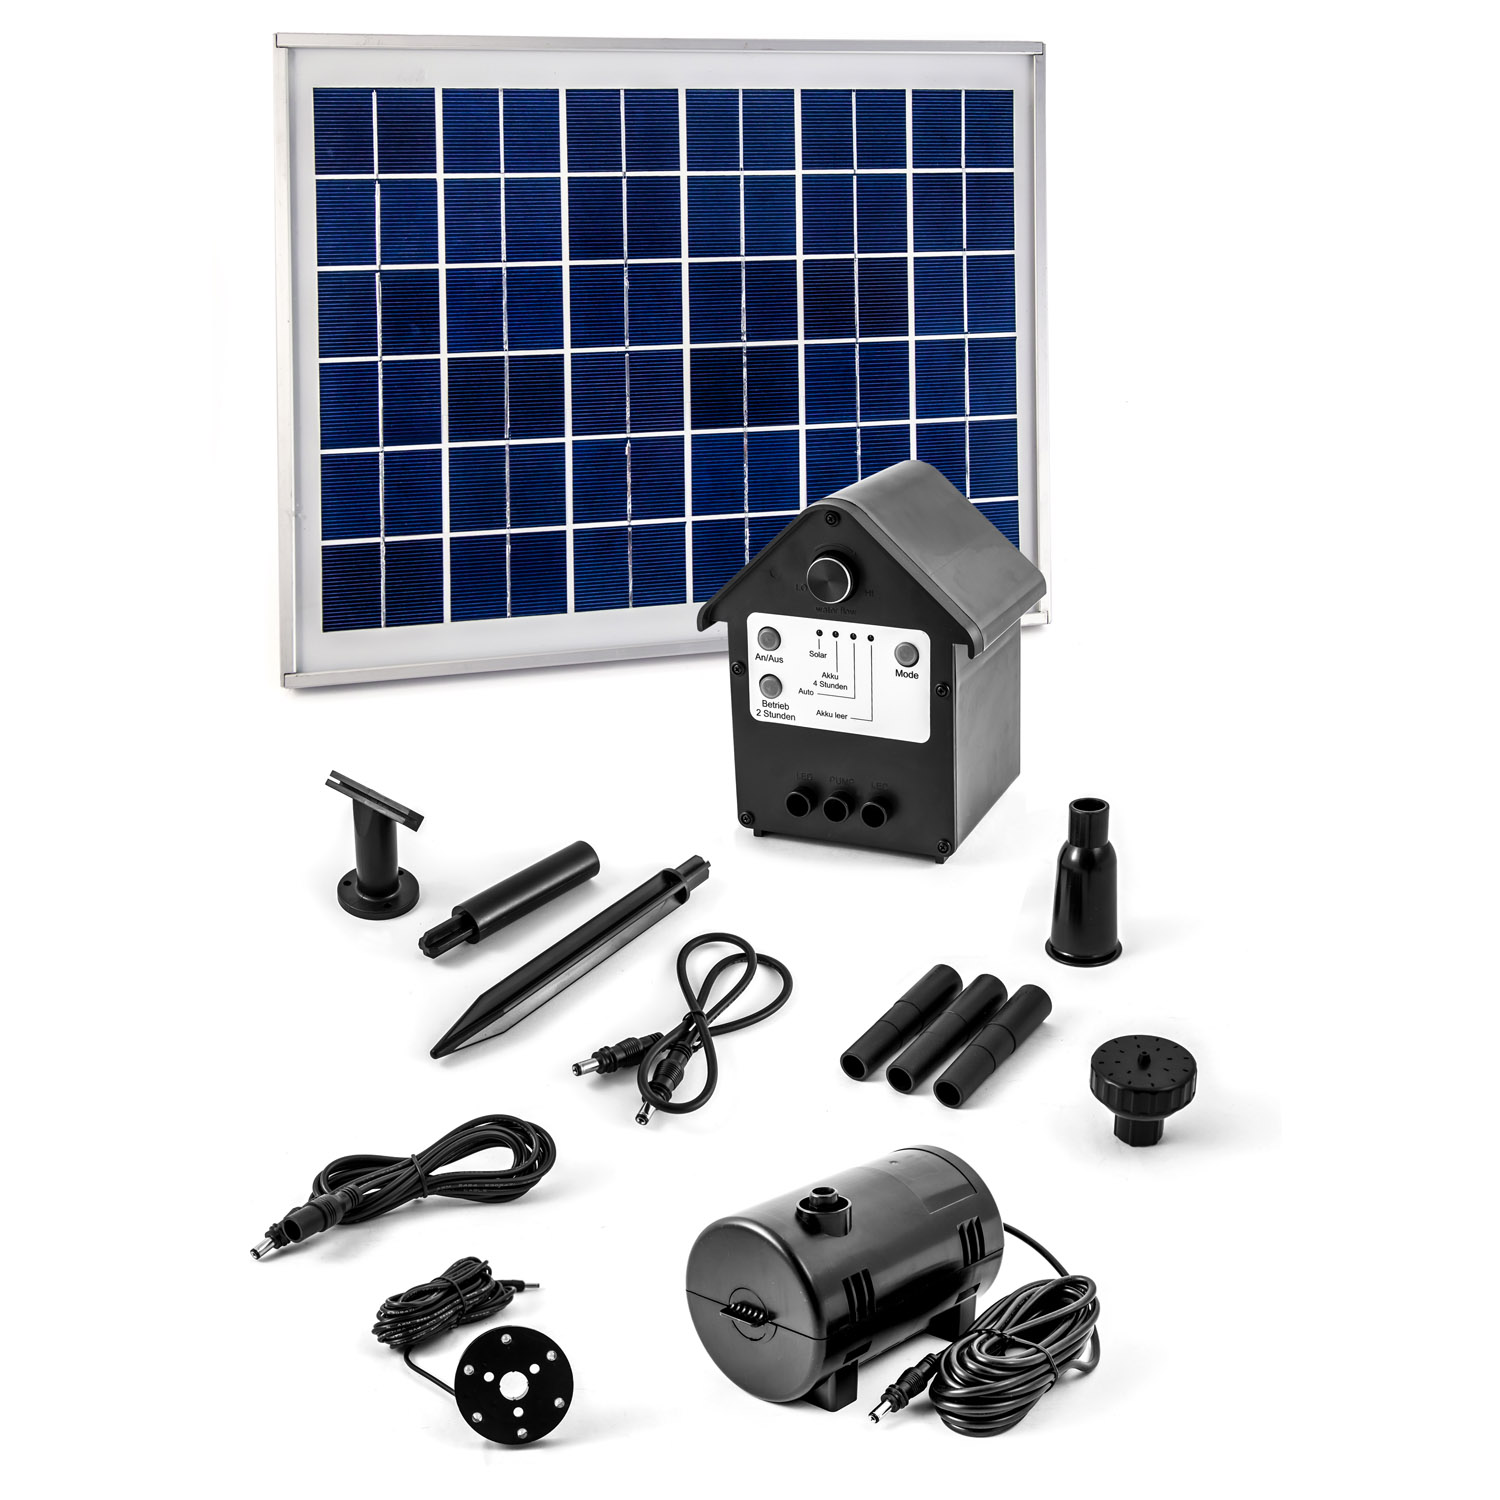 solarpumpe solar teichpumpe pumpe mit akku led solarteichpumpe springbrunnen ebay. Black Bedroom Furniture Sets. Home Design Ideas